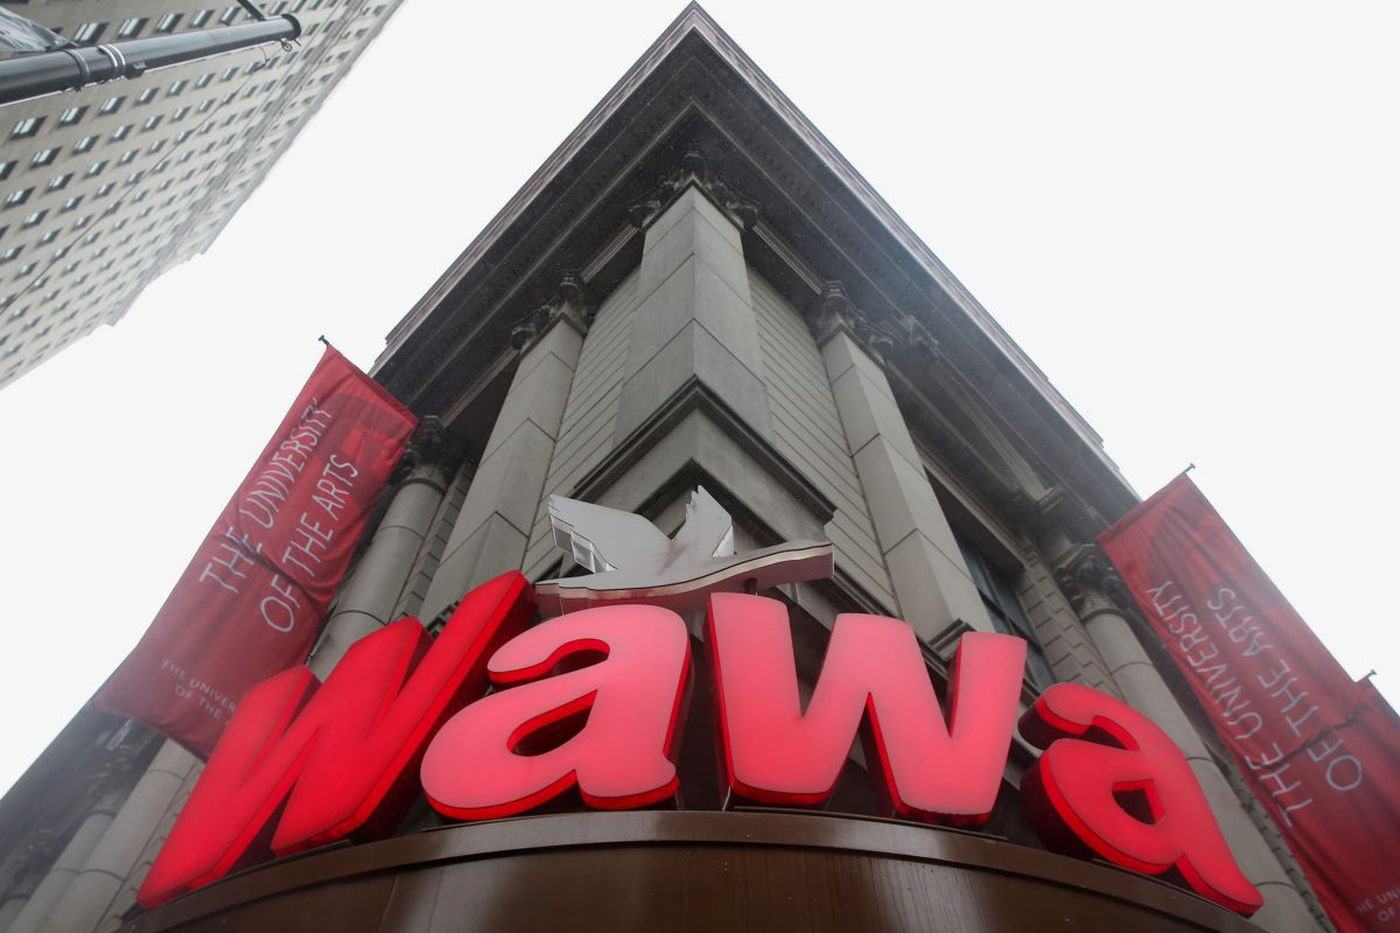 Wawa bathrooms voted number 1 in Pa. and number 2 in U.S.